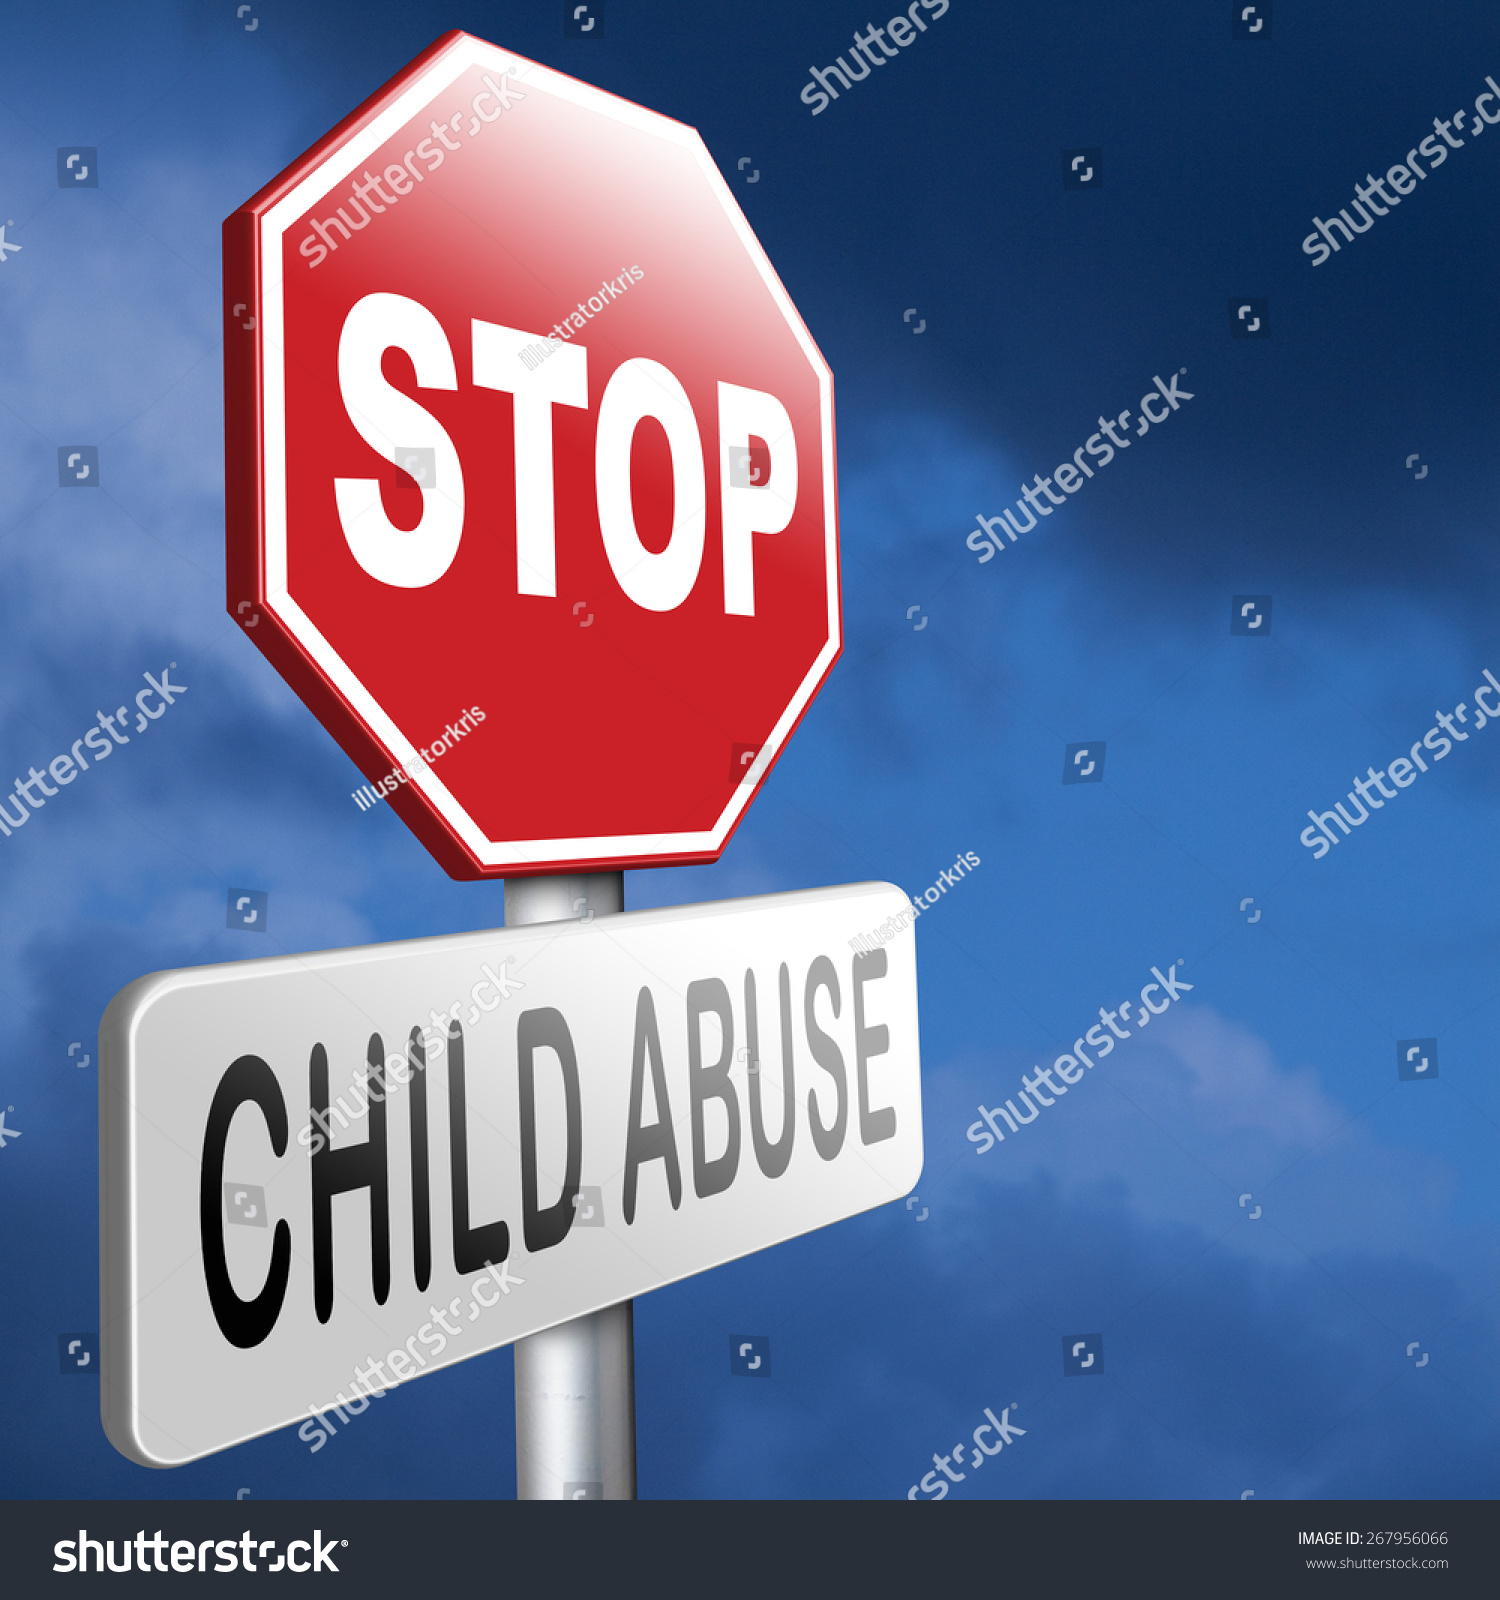 the physical and psychological abuses on children and the need to deal with the problem You know that how parents respond to their children has a big impact on how  children  mental health and substance abuse problems often place the children  in these  adults have long realized that children are vulnerable to physical  harm.